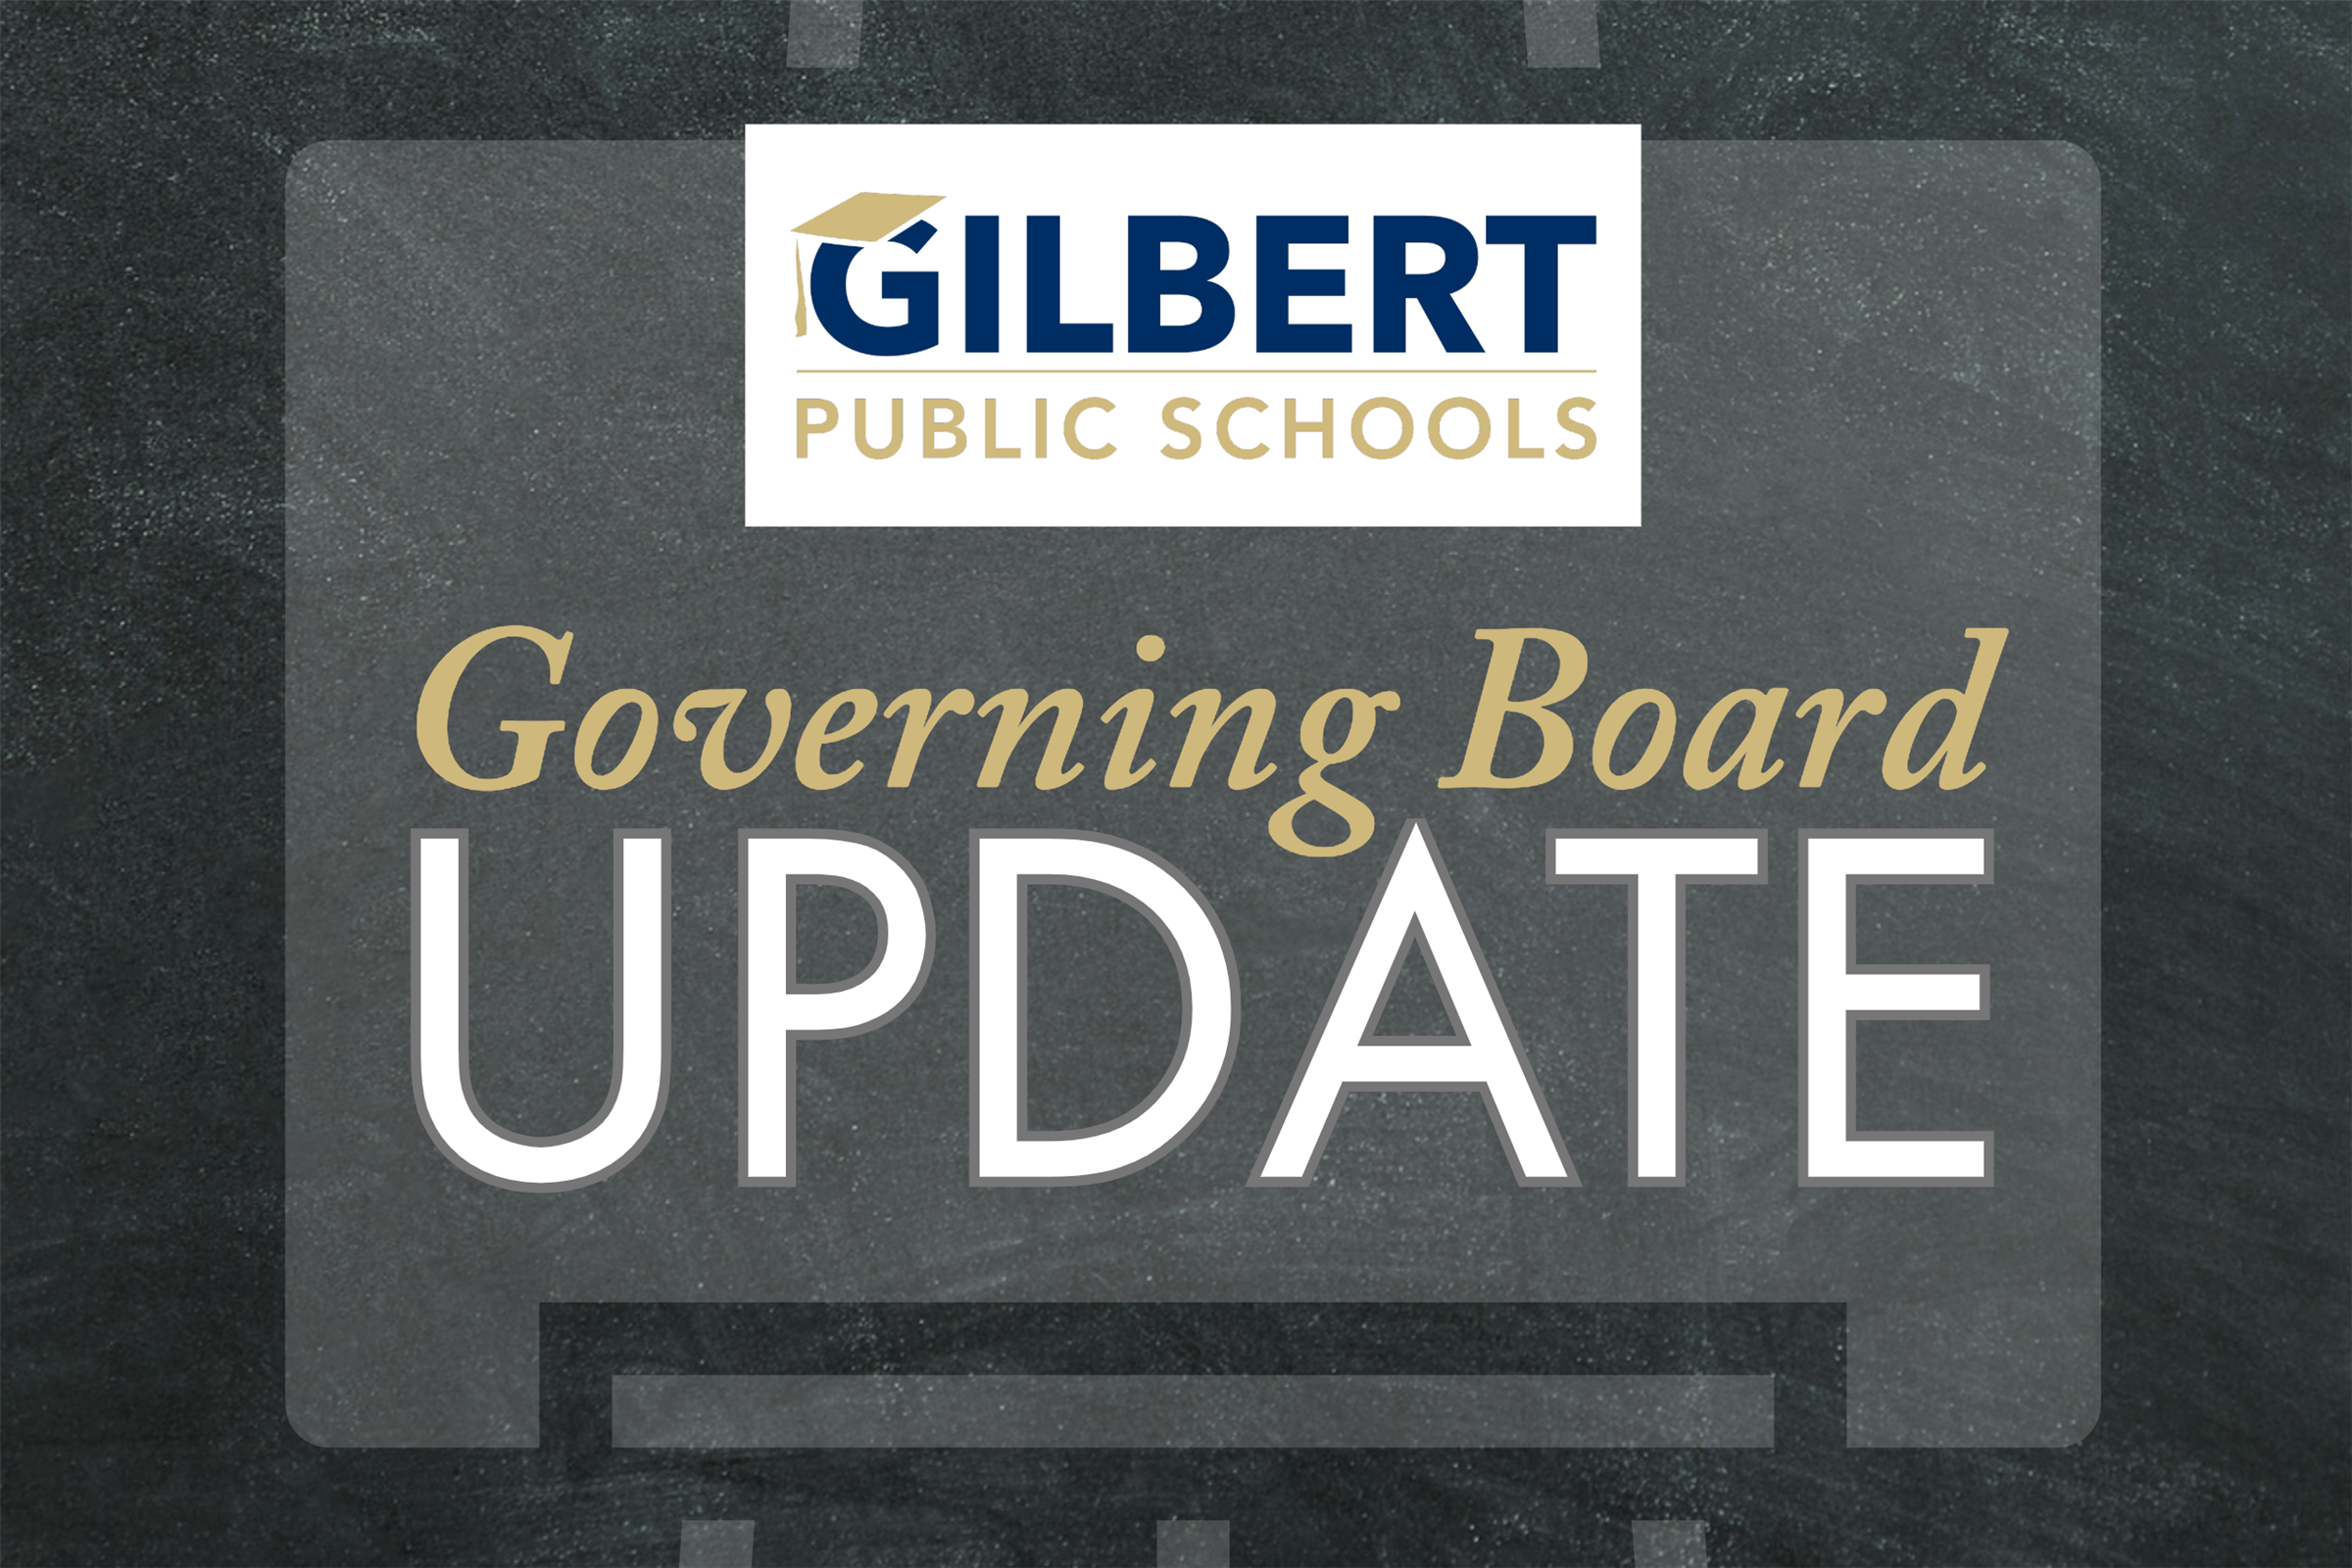 Governing Board Updates